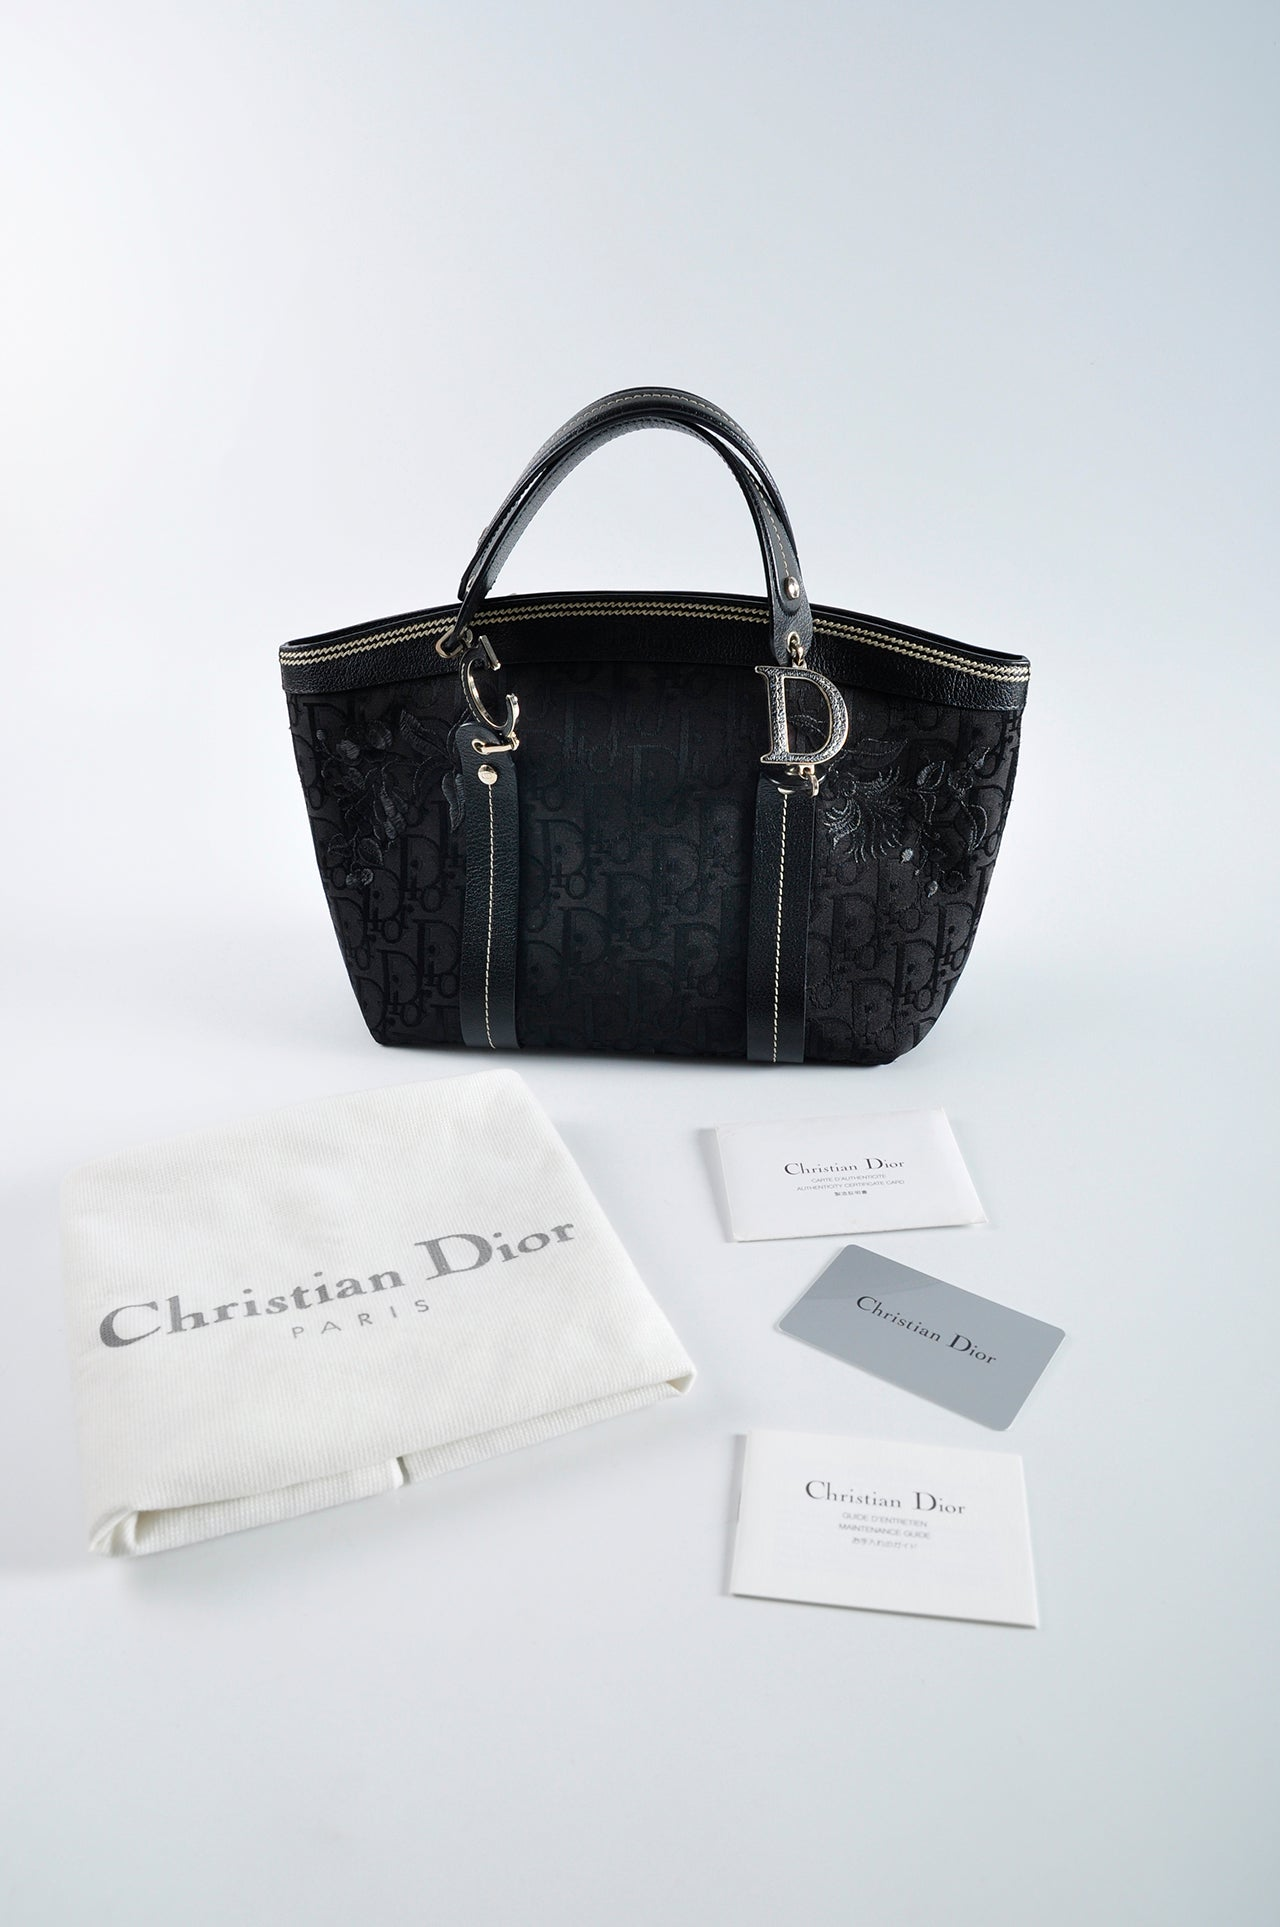 Christian Dior Monogram Canvas Logo Black Top Handle Bag 07-BO-0045 - Glampot